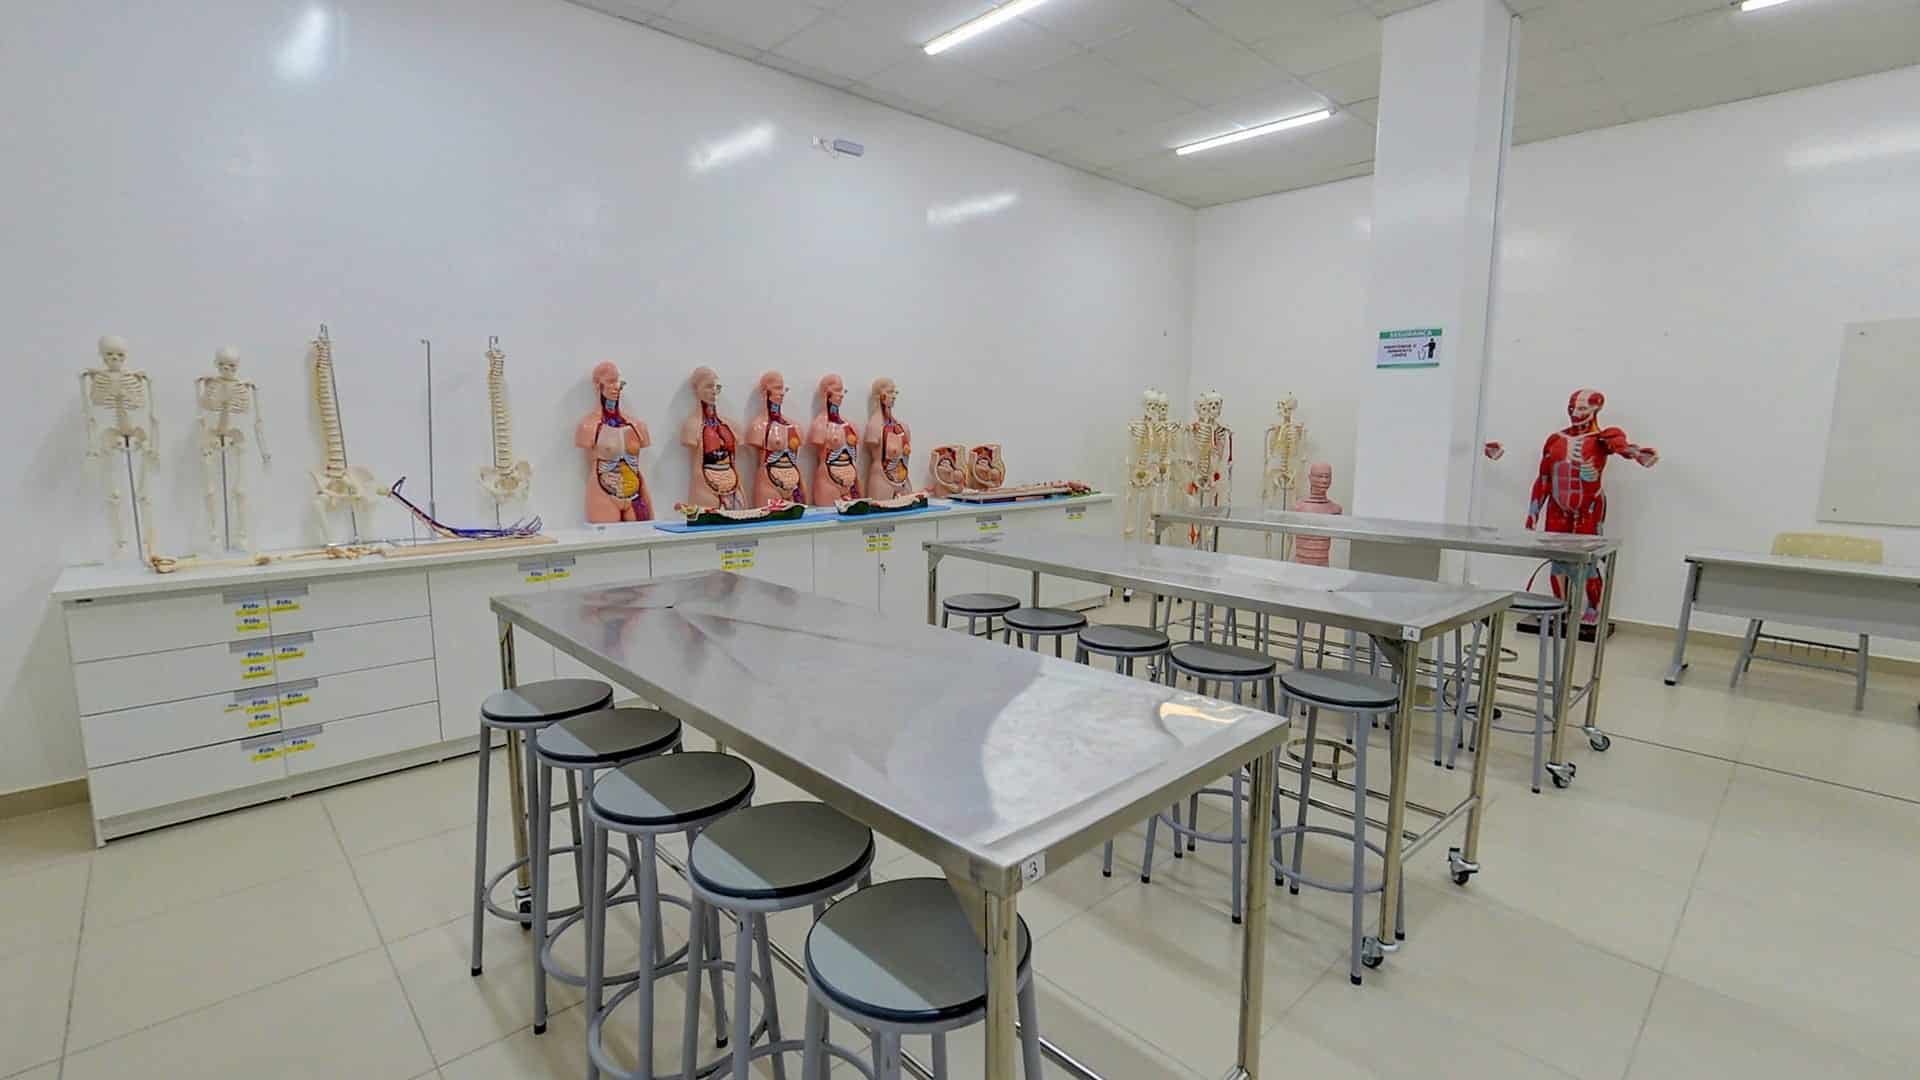 FITS – Faculdade Tiradentes